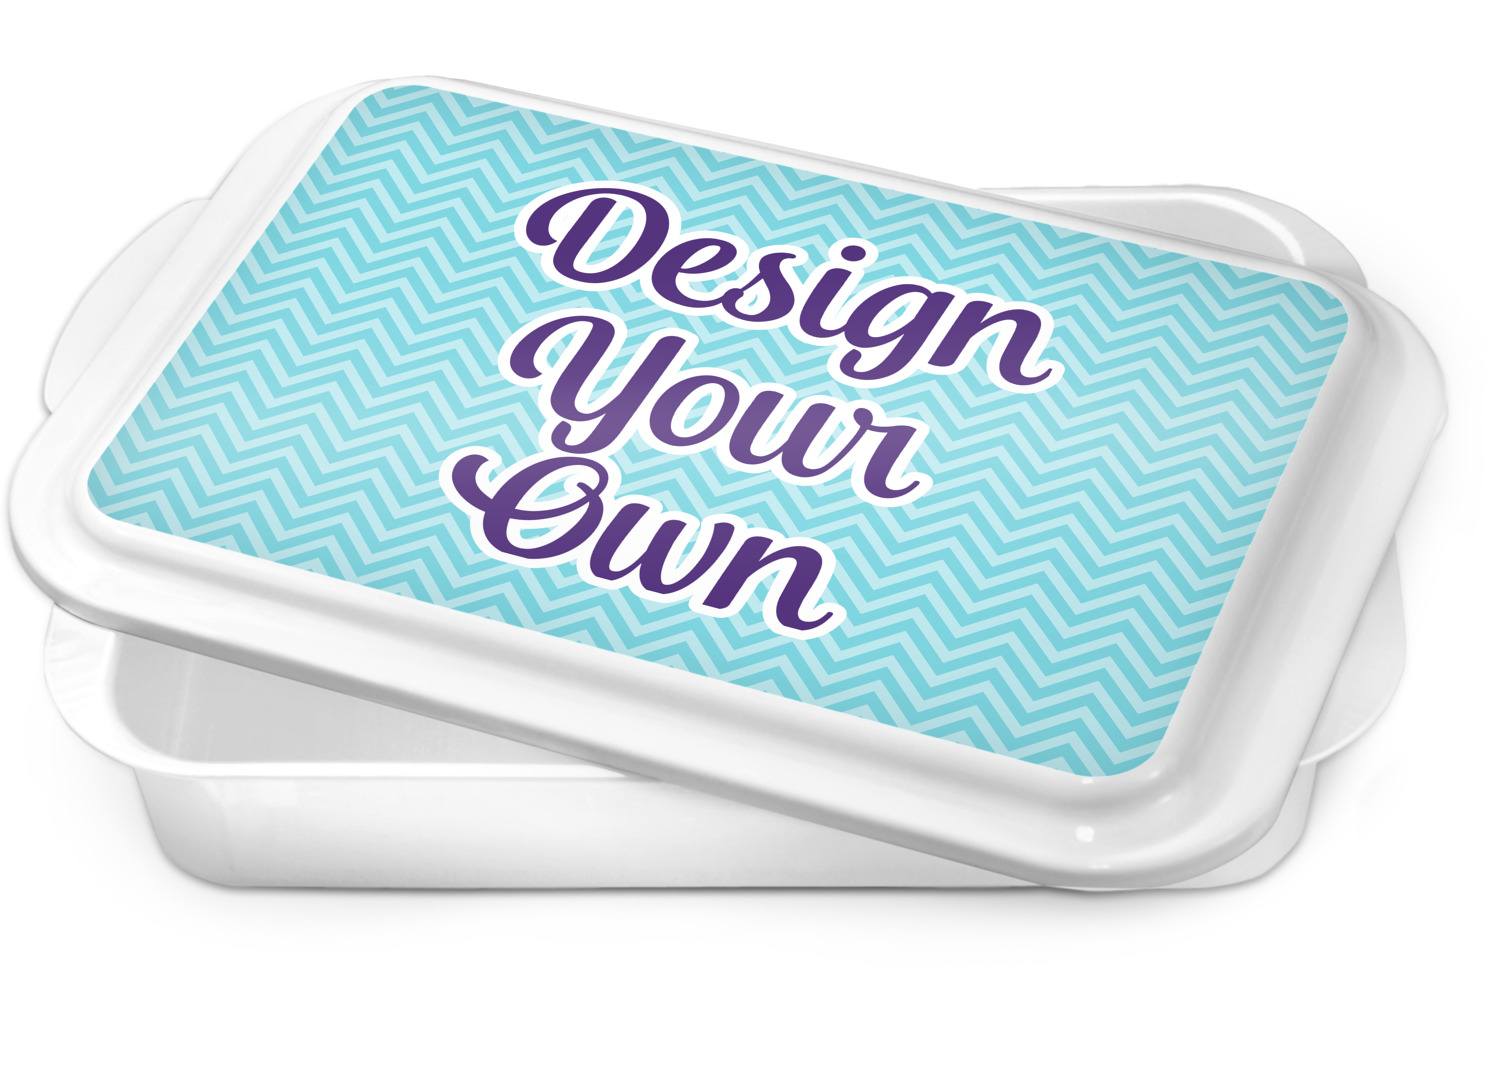 Design Your Own Photo Cake : Design Your Own Cake Pan (Personalized) - YouCustomizeIt